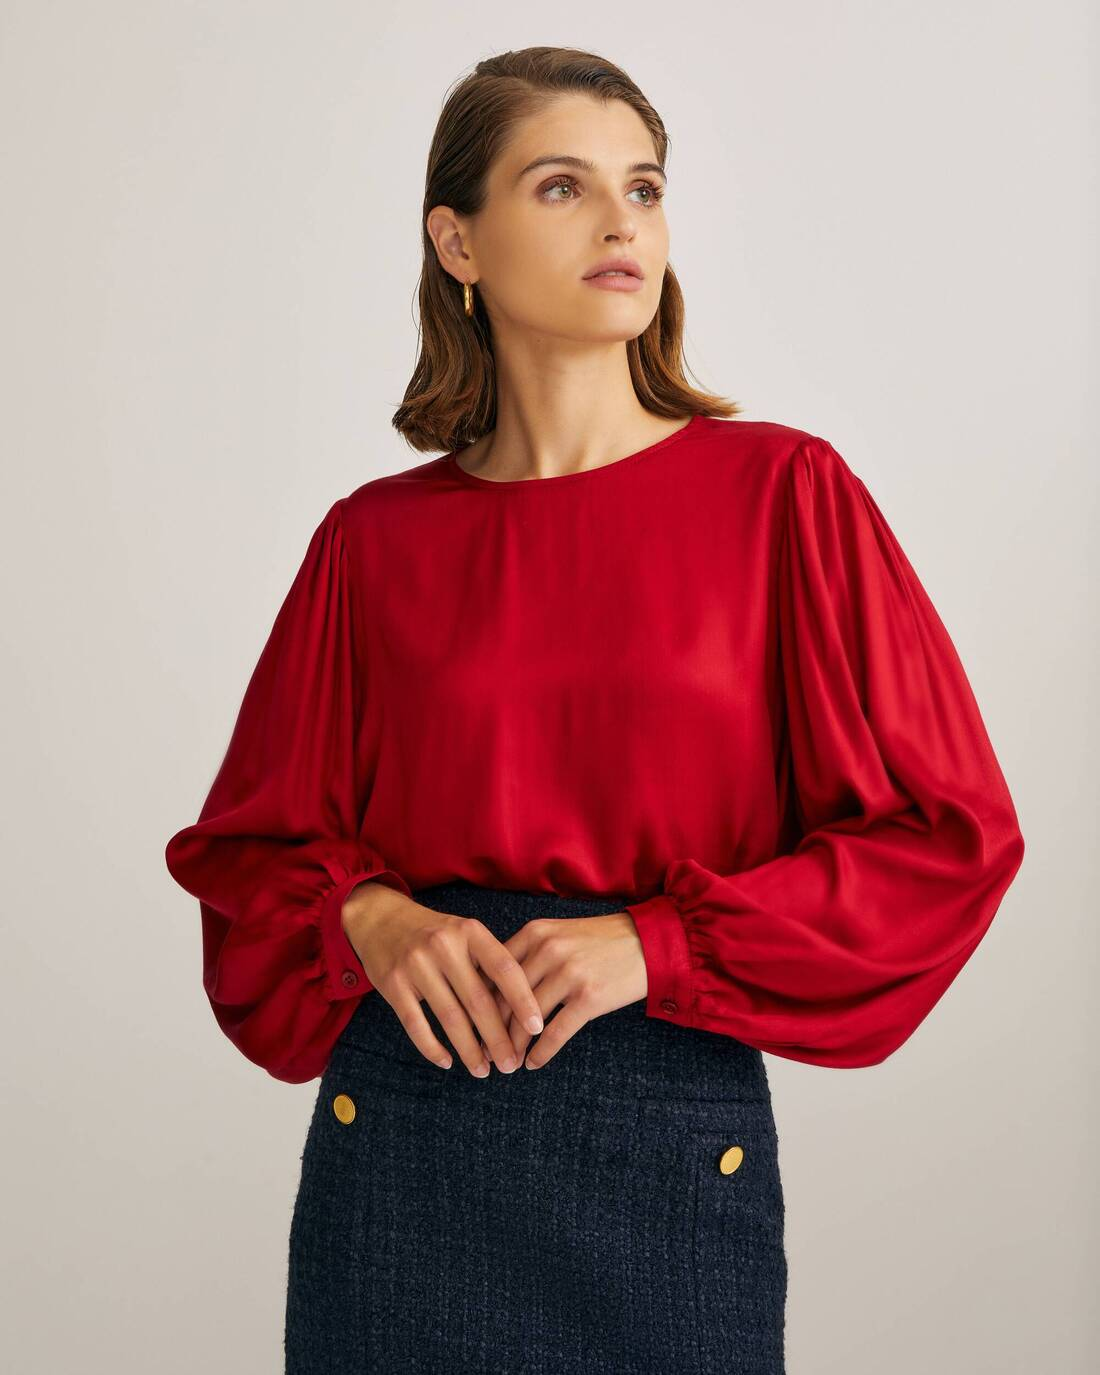 Flowy ruffled blouse with puff sleeves